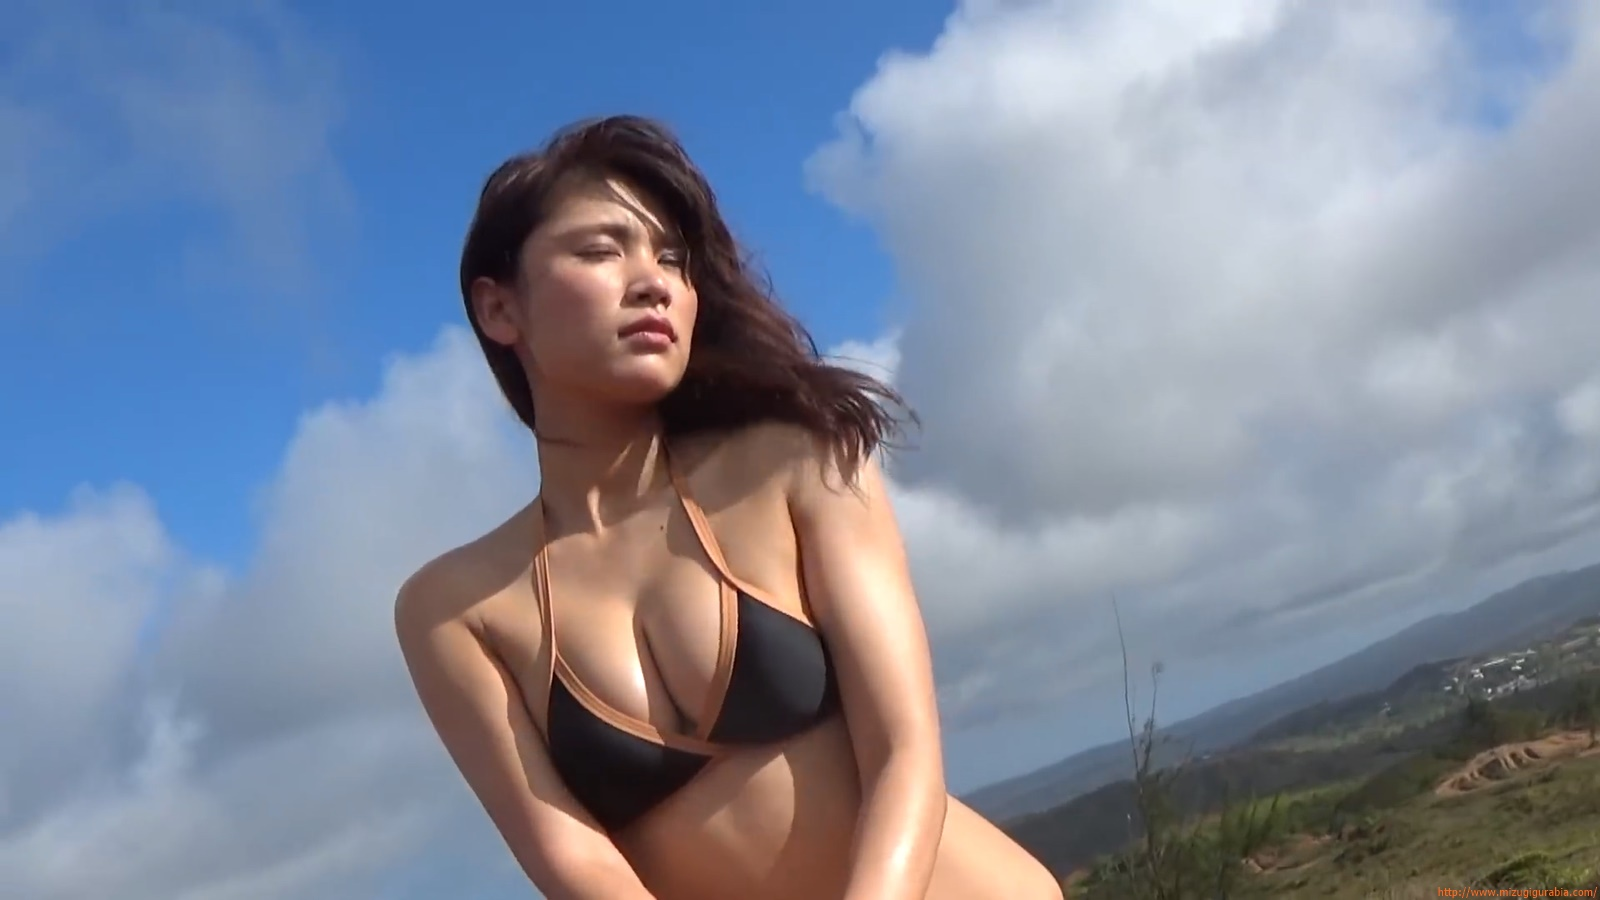 Shes a sunny bodice who continues to lead the way in gravure081